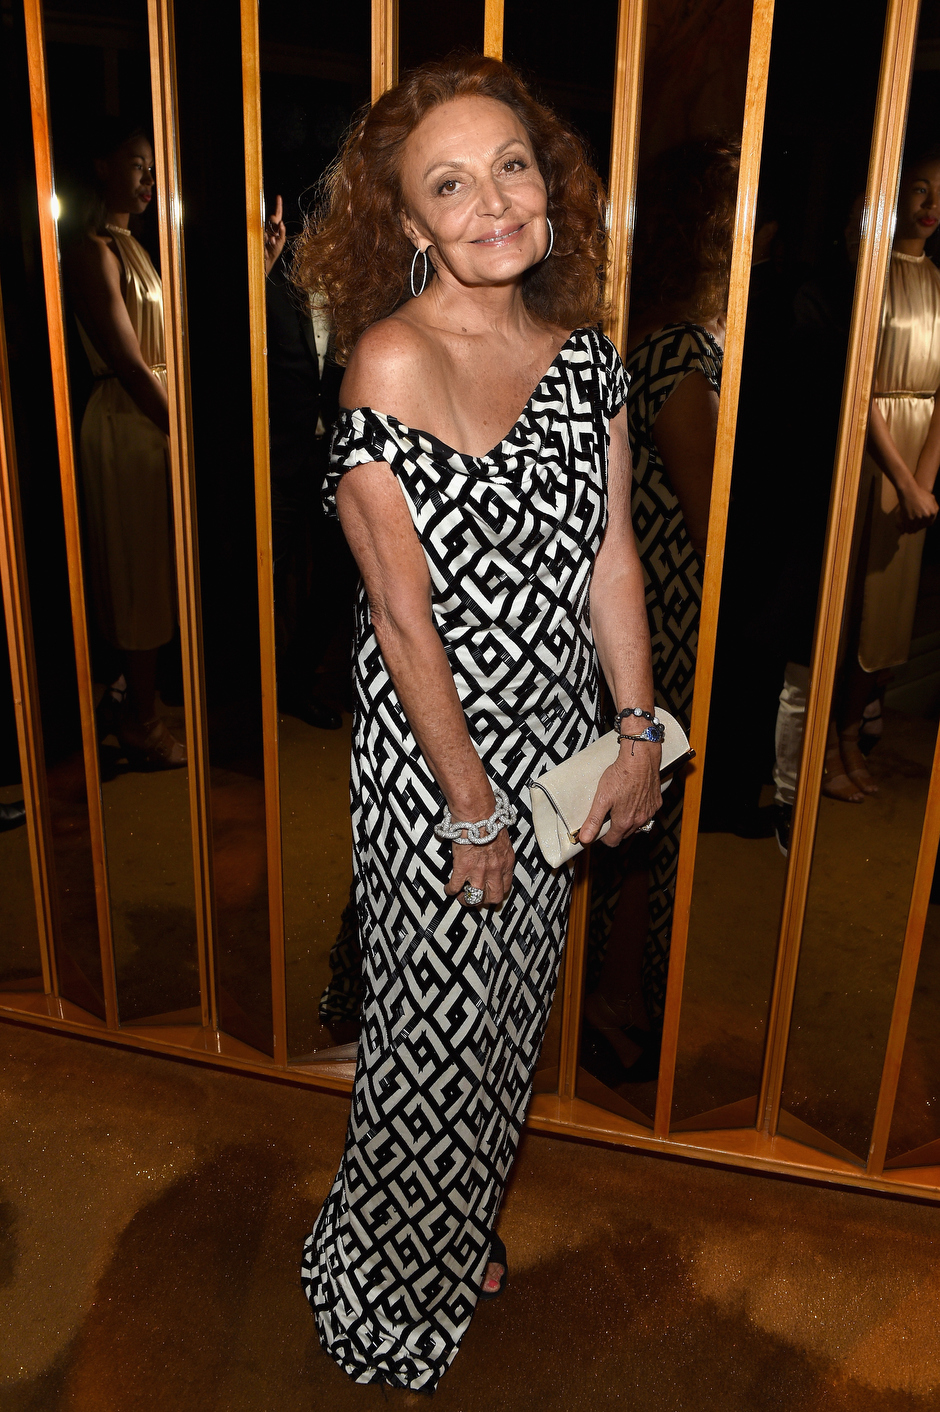 . Fashion designer Diane von Furstenberg attends the official CFDA Fashion Awards after party co-Hosted by Refinery29 at The Top of The Standard on June 1, 2015 in New York City.  (Photo by Dimitrios Kambouris/Getty Images for Refinery29)